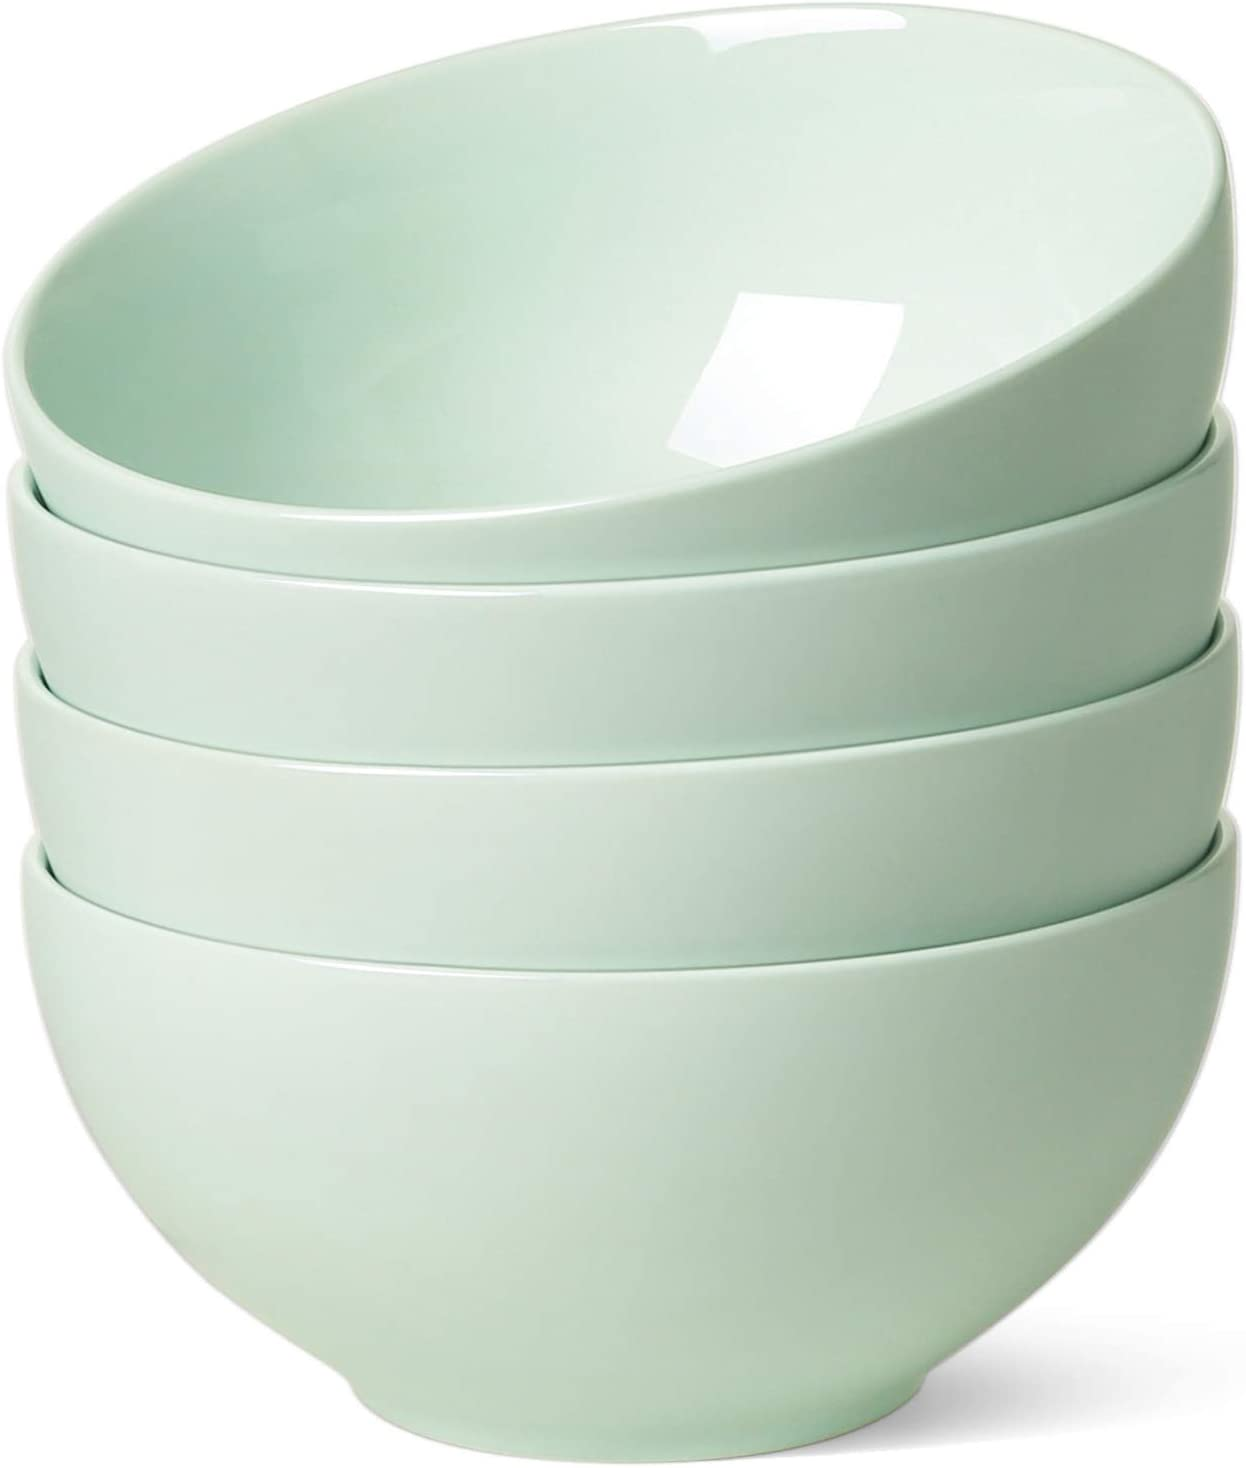 LE TAUCI Soup Cereal Directly managed store Bowls 22 Kitchen Porcelain oz mart for Bowl Ric